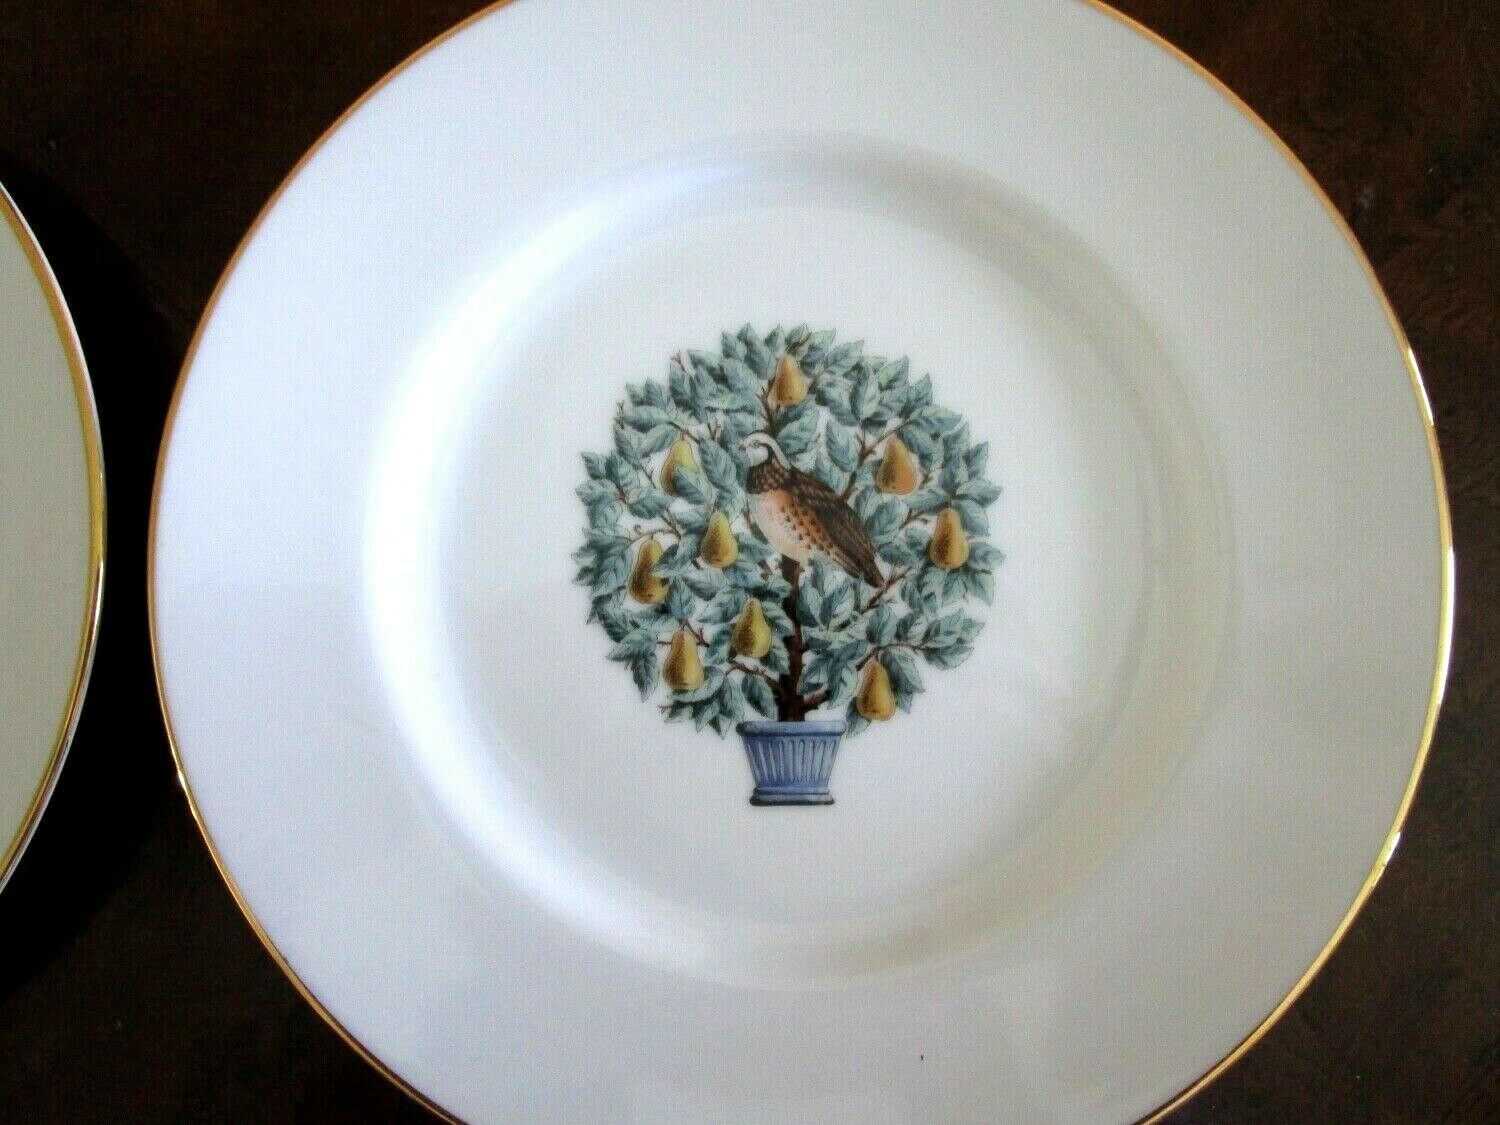 4 PC Partridge Pear Tree Dessert Plates Twelve 12 Days of Christmas Avon Salad